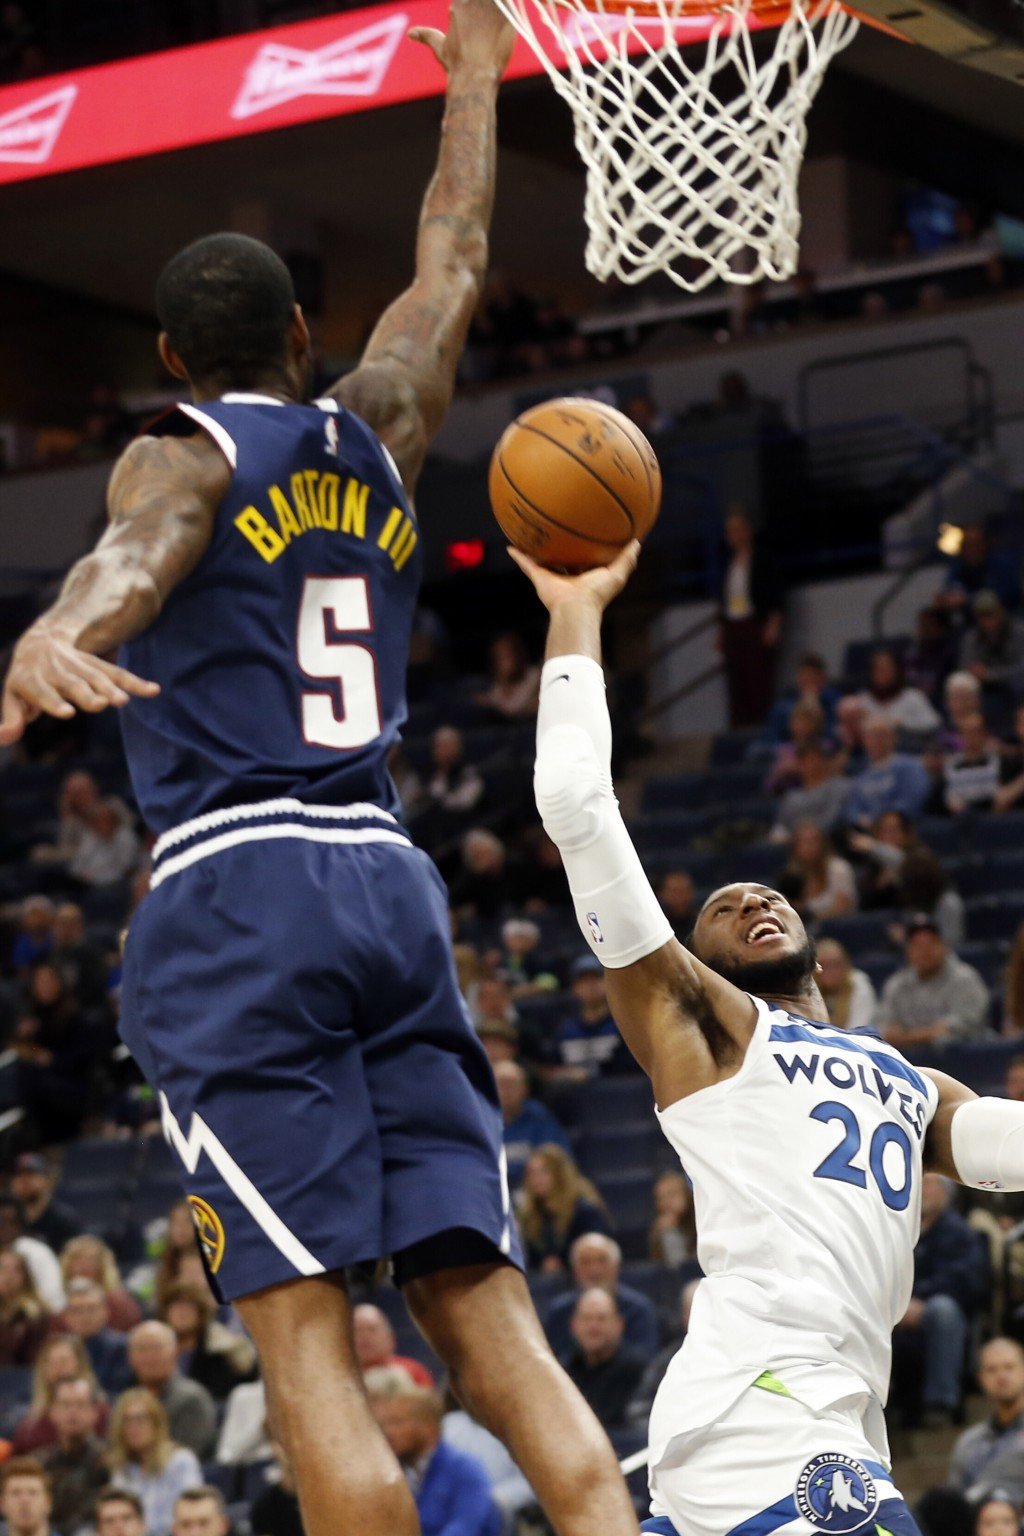 Minnesota Timberwolves' Josh Okogie, right, of Nigeria, goes for a layup as Denver Nuggets' Will Barton defends in the first half of an NBA basketball...